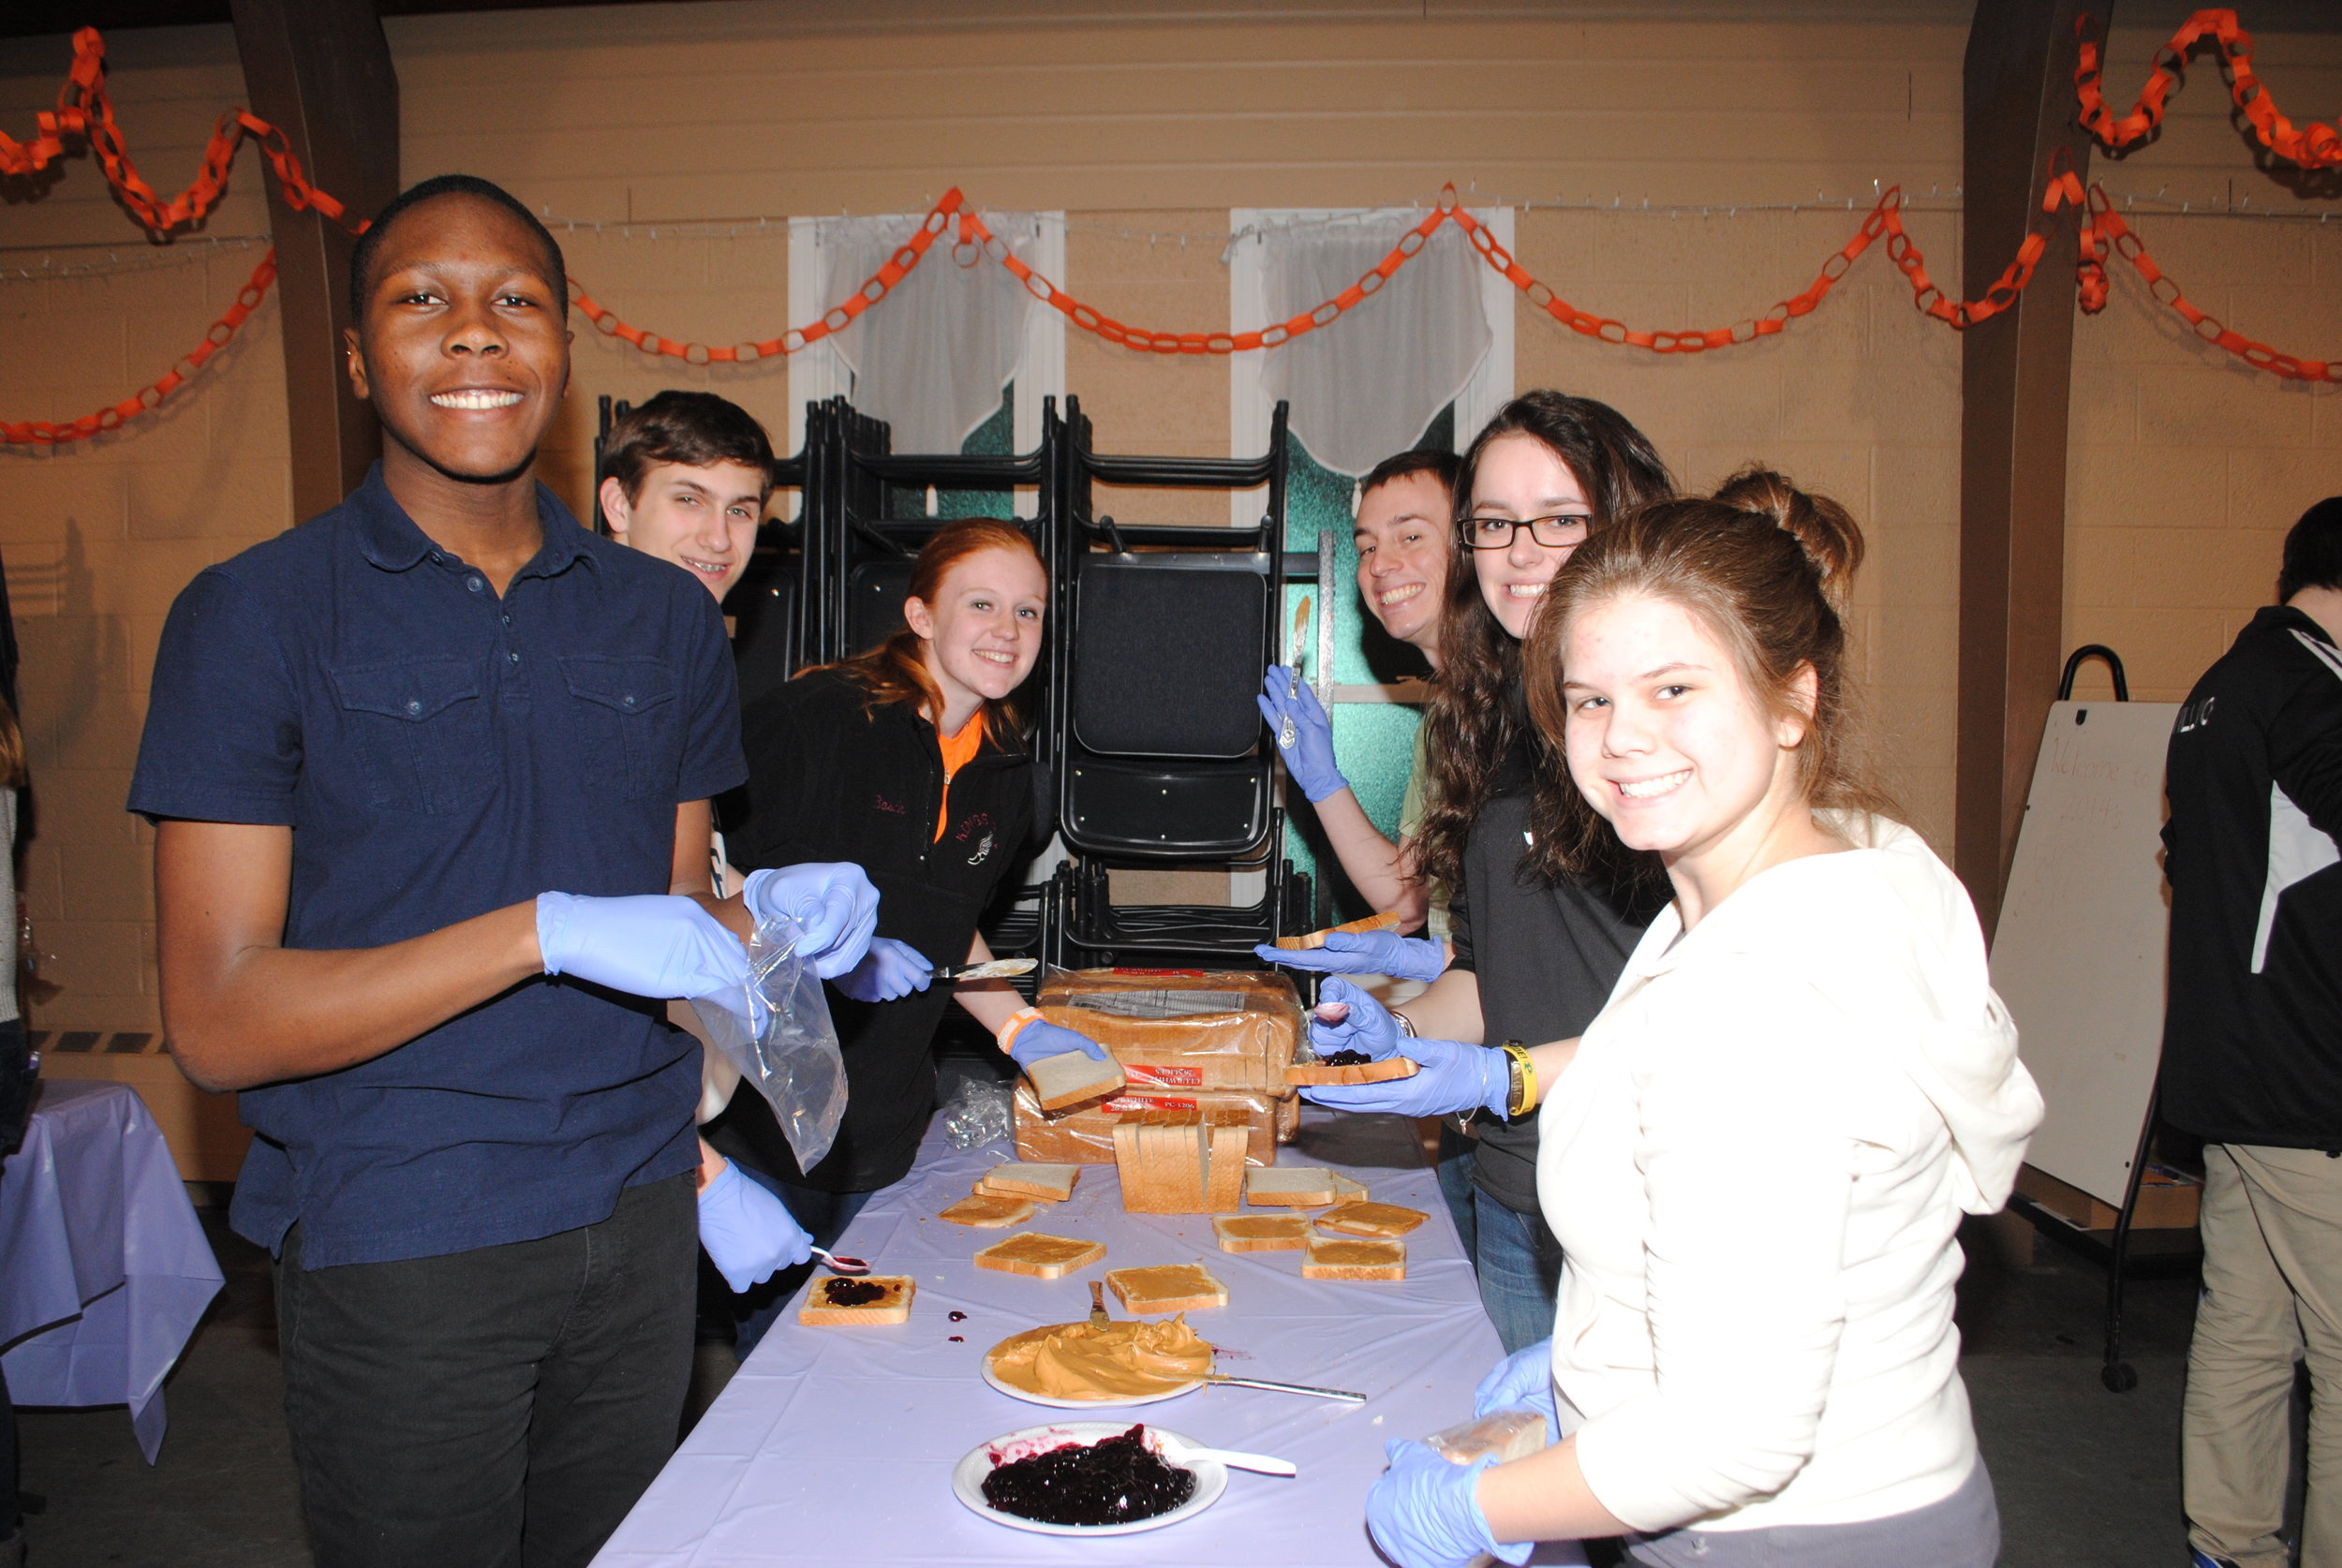 Peanut Butter & Jelly Gang: - These concerned volunteers meet every 3rd Friday of the month and make 800 Peanut Butter & Jelly sandwiches for the homeless. All volunteers, middle school and older, are welcome to join us. For more information, visit Steve O'Hagan at our Contact Page.